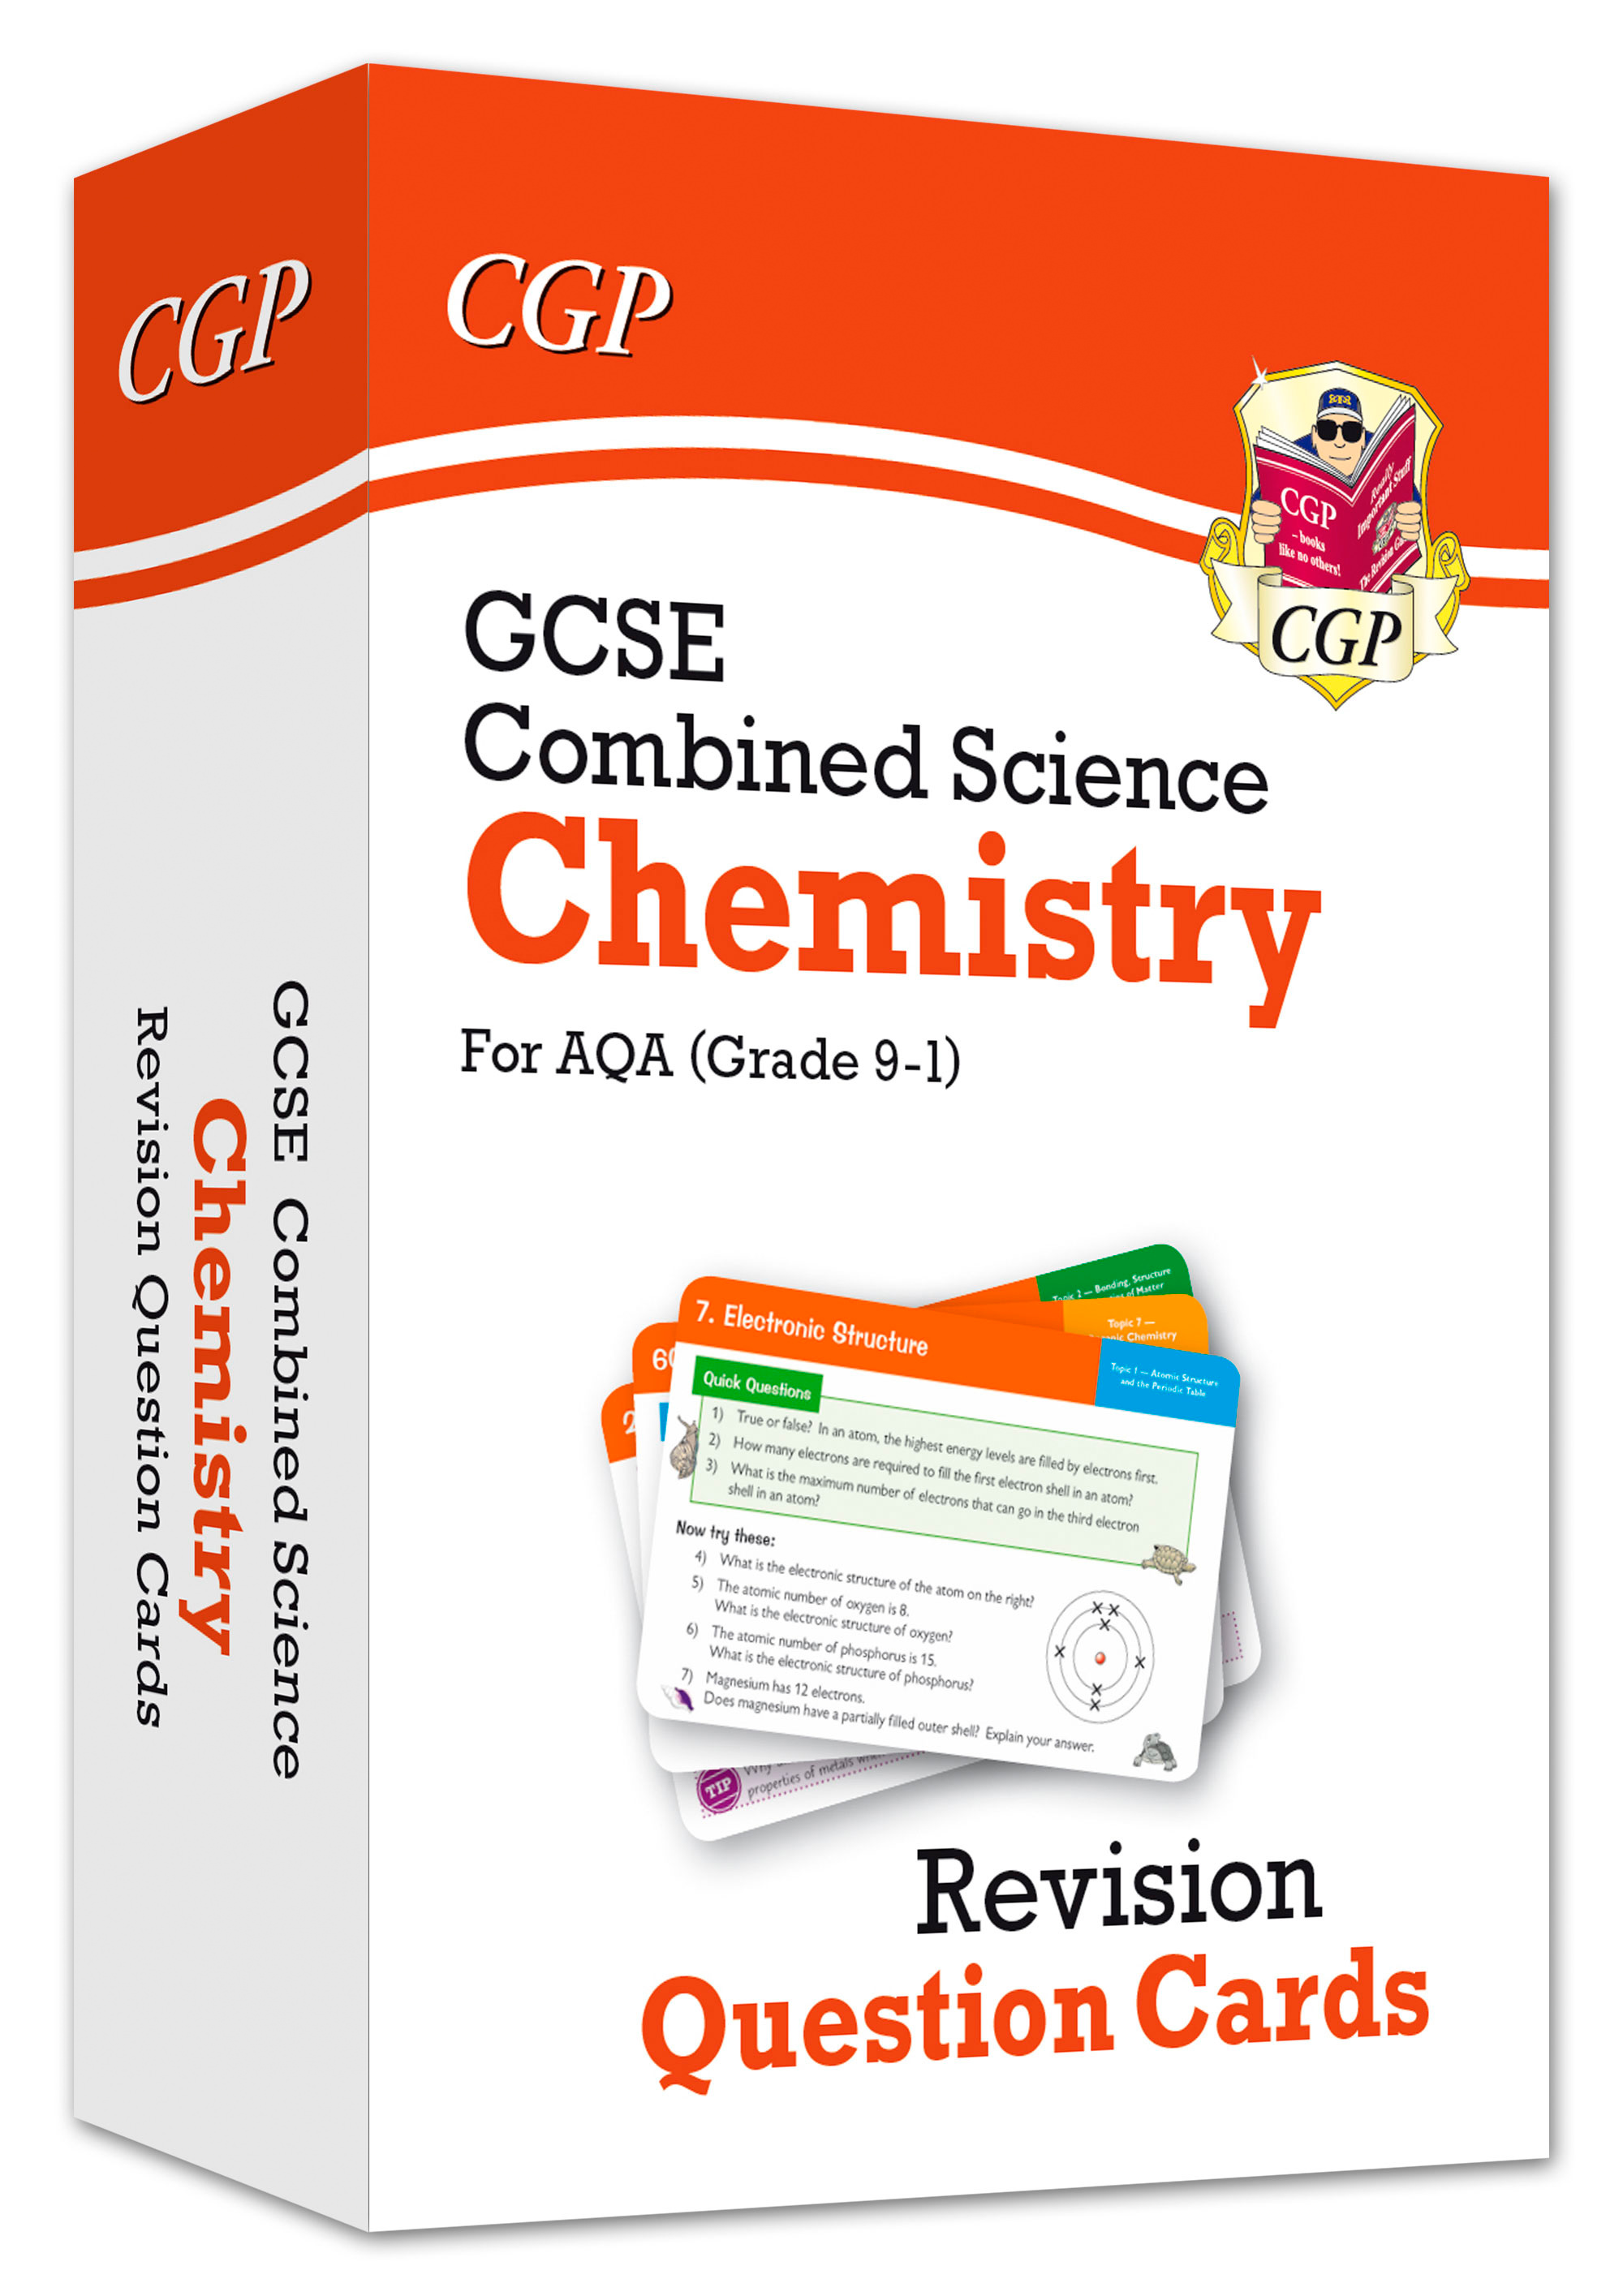 SCCAF41D - New 9-1 GCSE Combined Science: Chemistry AQA Revision Question Cards Online Edition